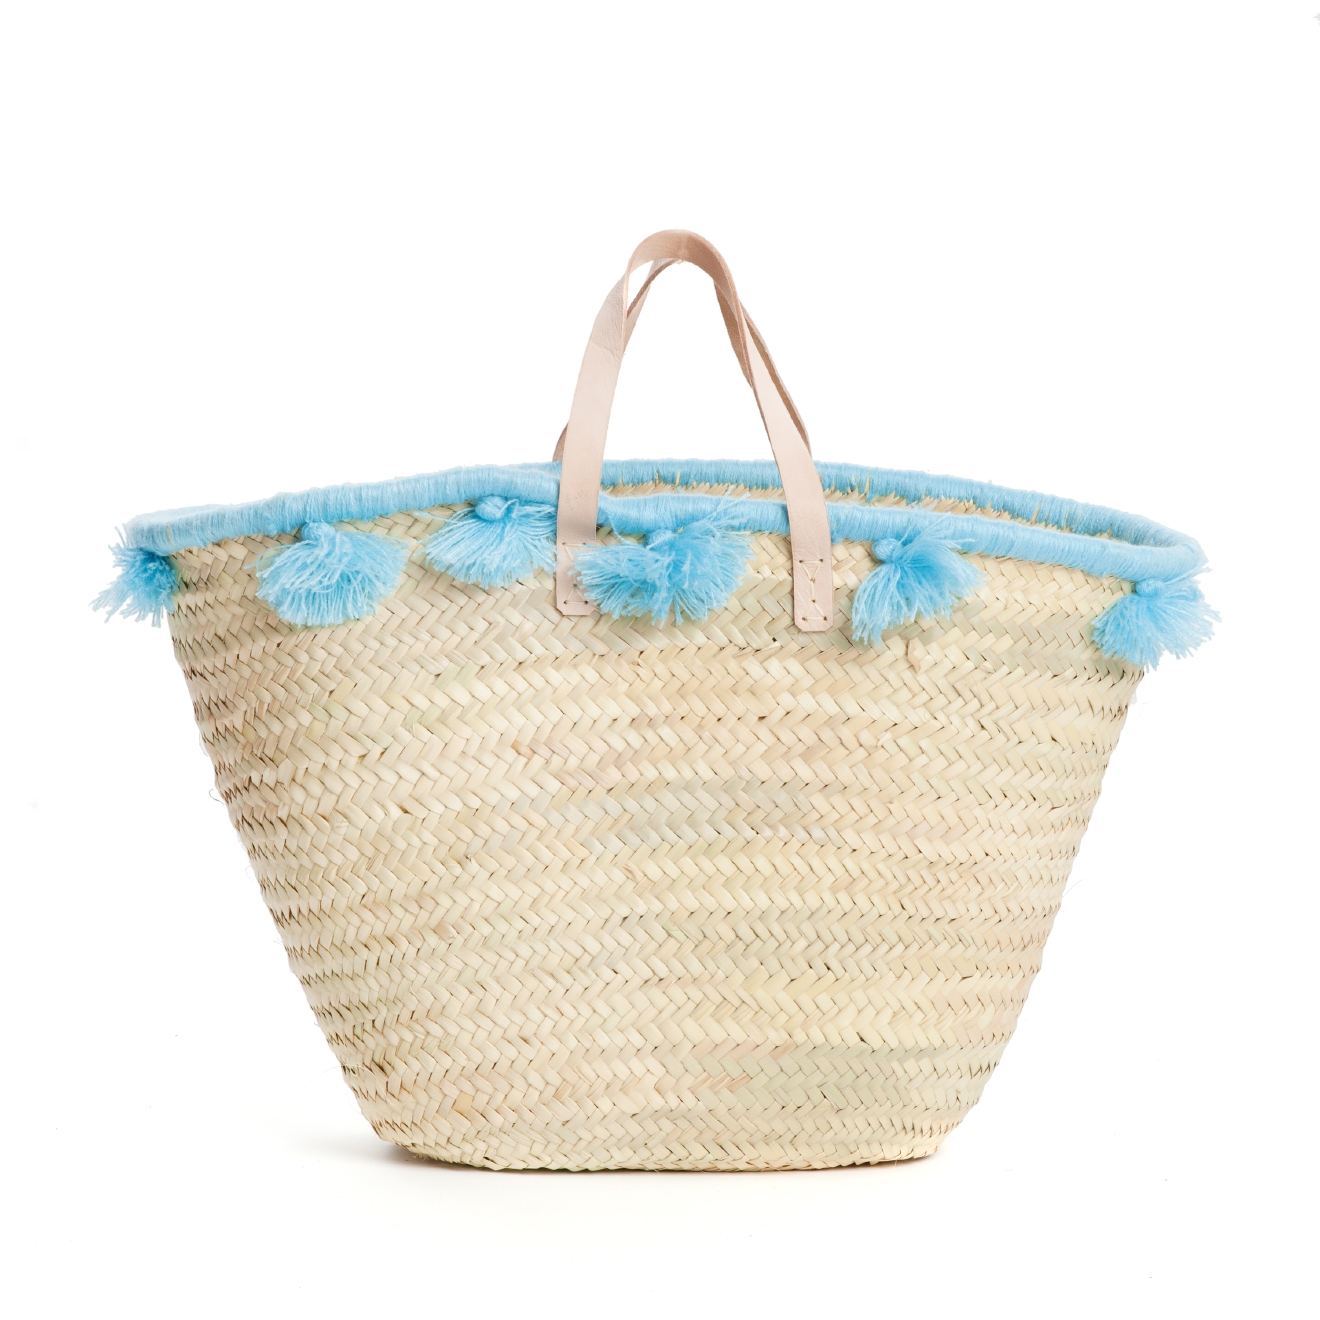 You know you carry your life in your purse so why not make it a fun tassley one! Blue Pastel Pom Pom French Basket, $75, tnuck.com  (Image courtesy Tuckernuck)